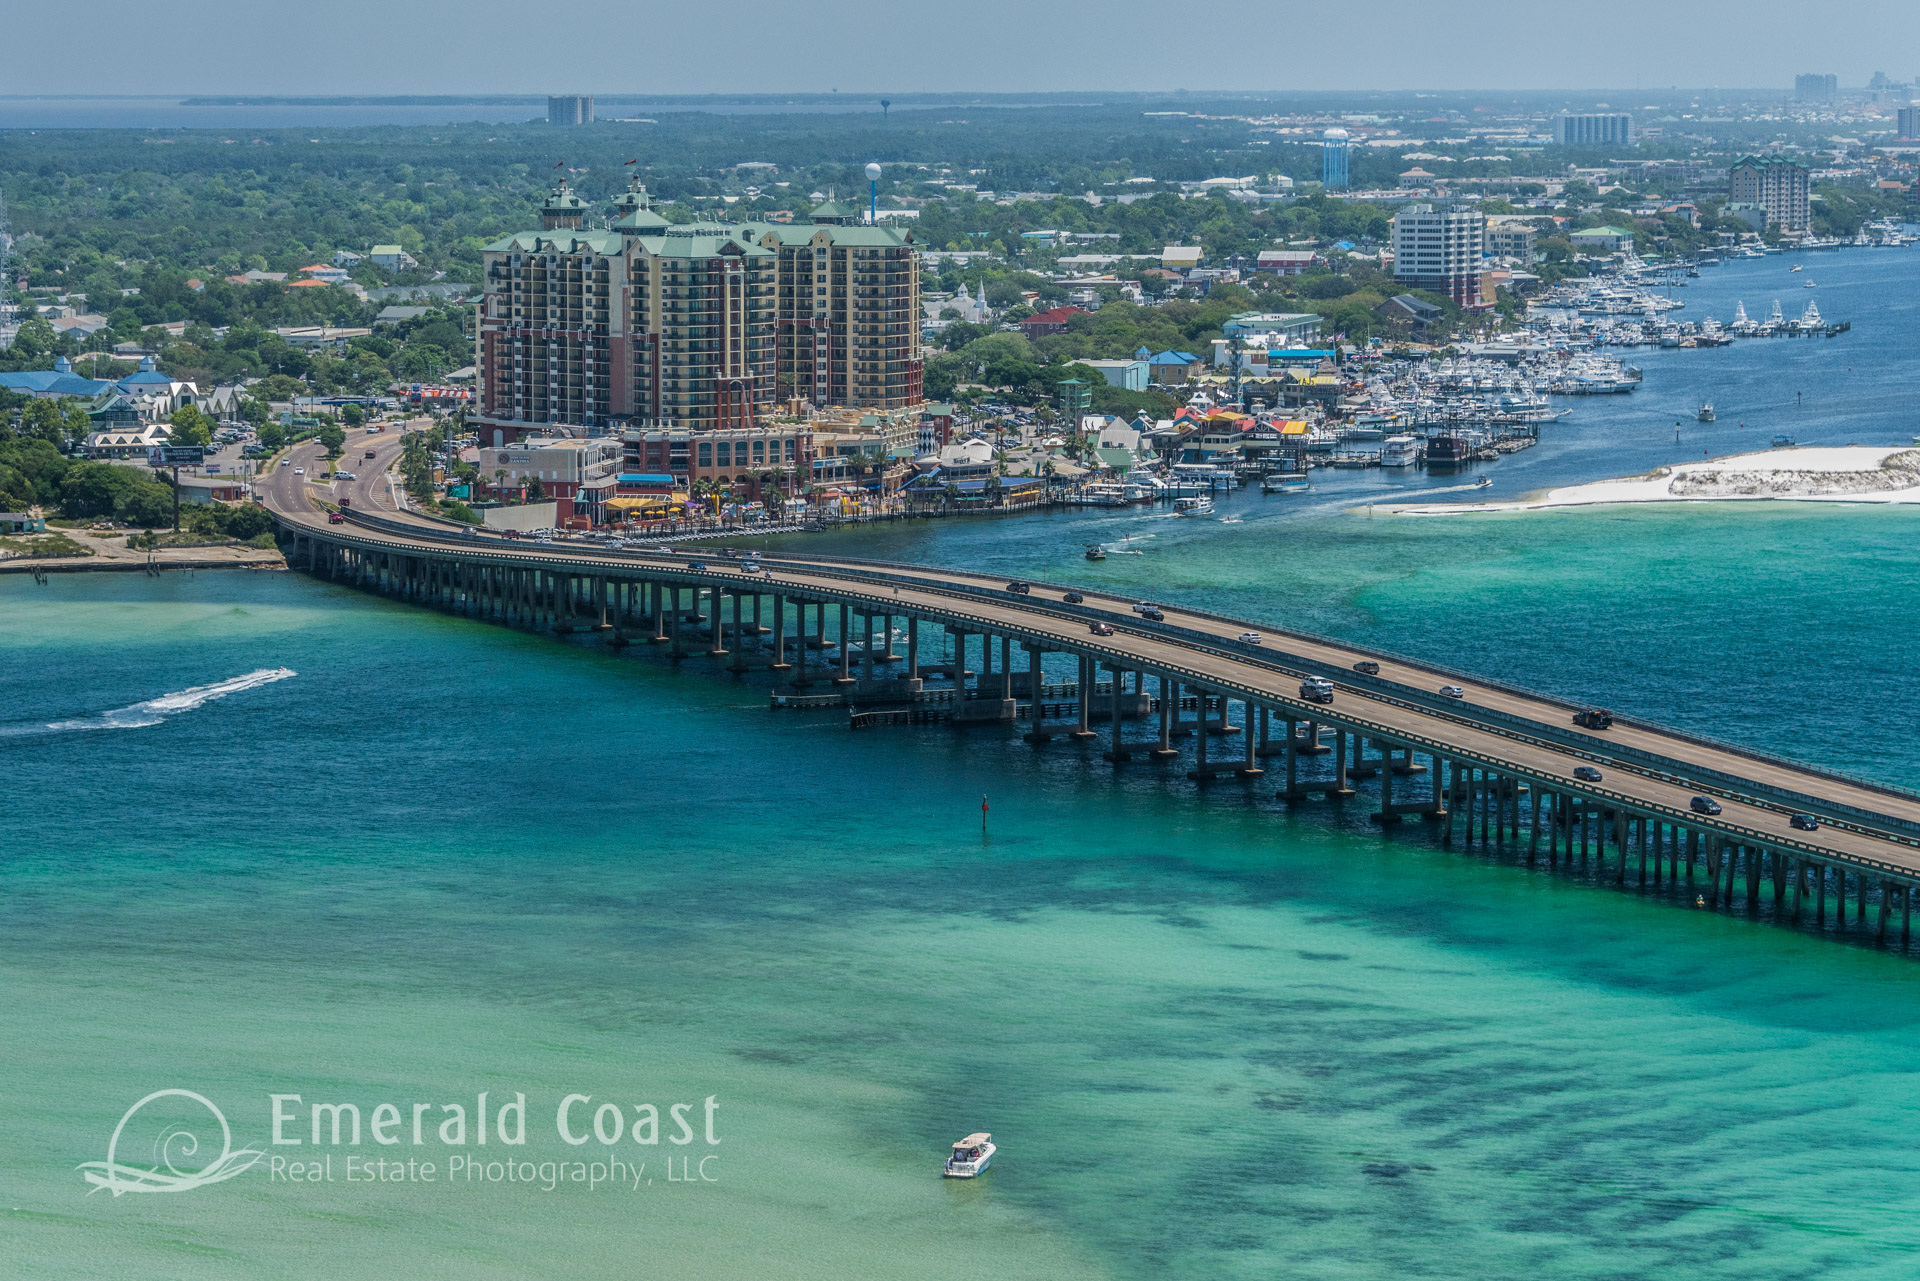 Emerald Grande, Destin, Florida, Destin pass, Aerial Photography, Gulf of Mexico